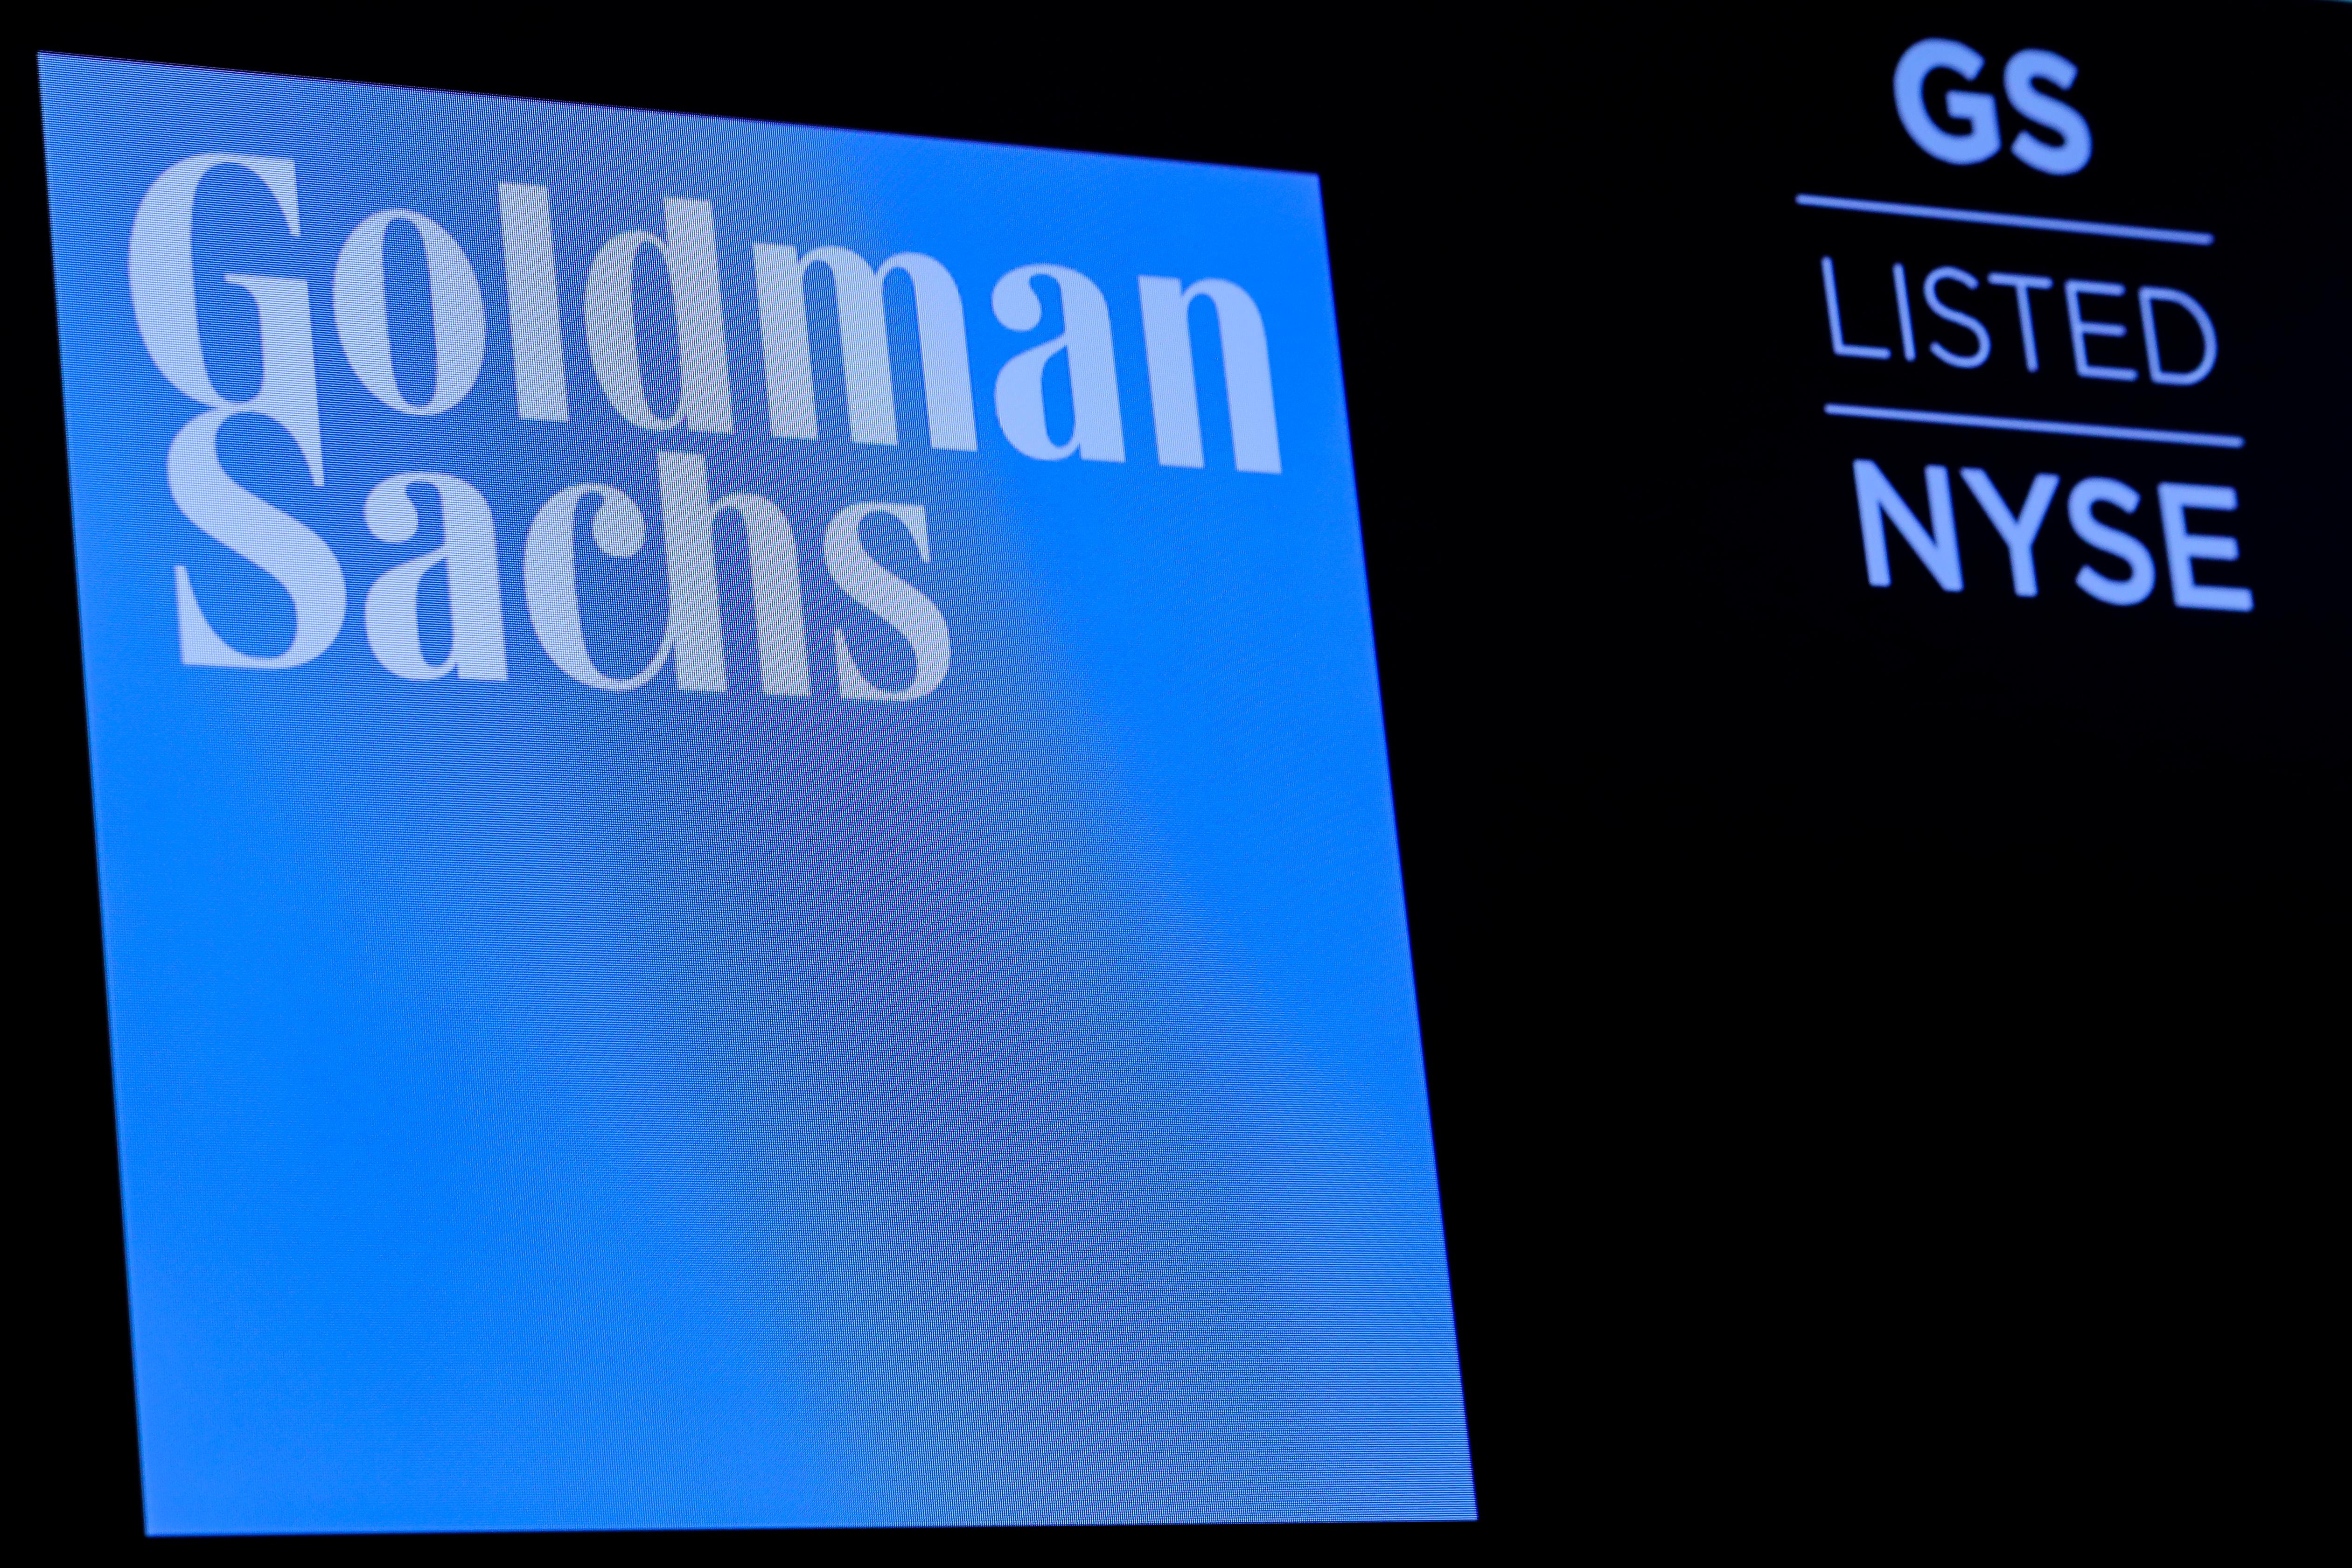 Goldman Sachs plans to disrupt banking like Amazon did retail, Apple in music